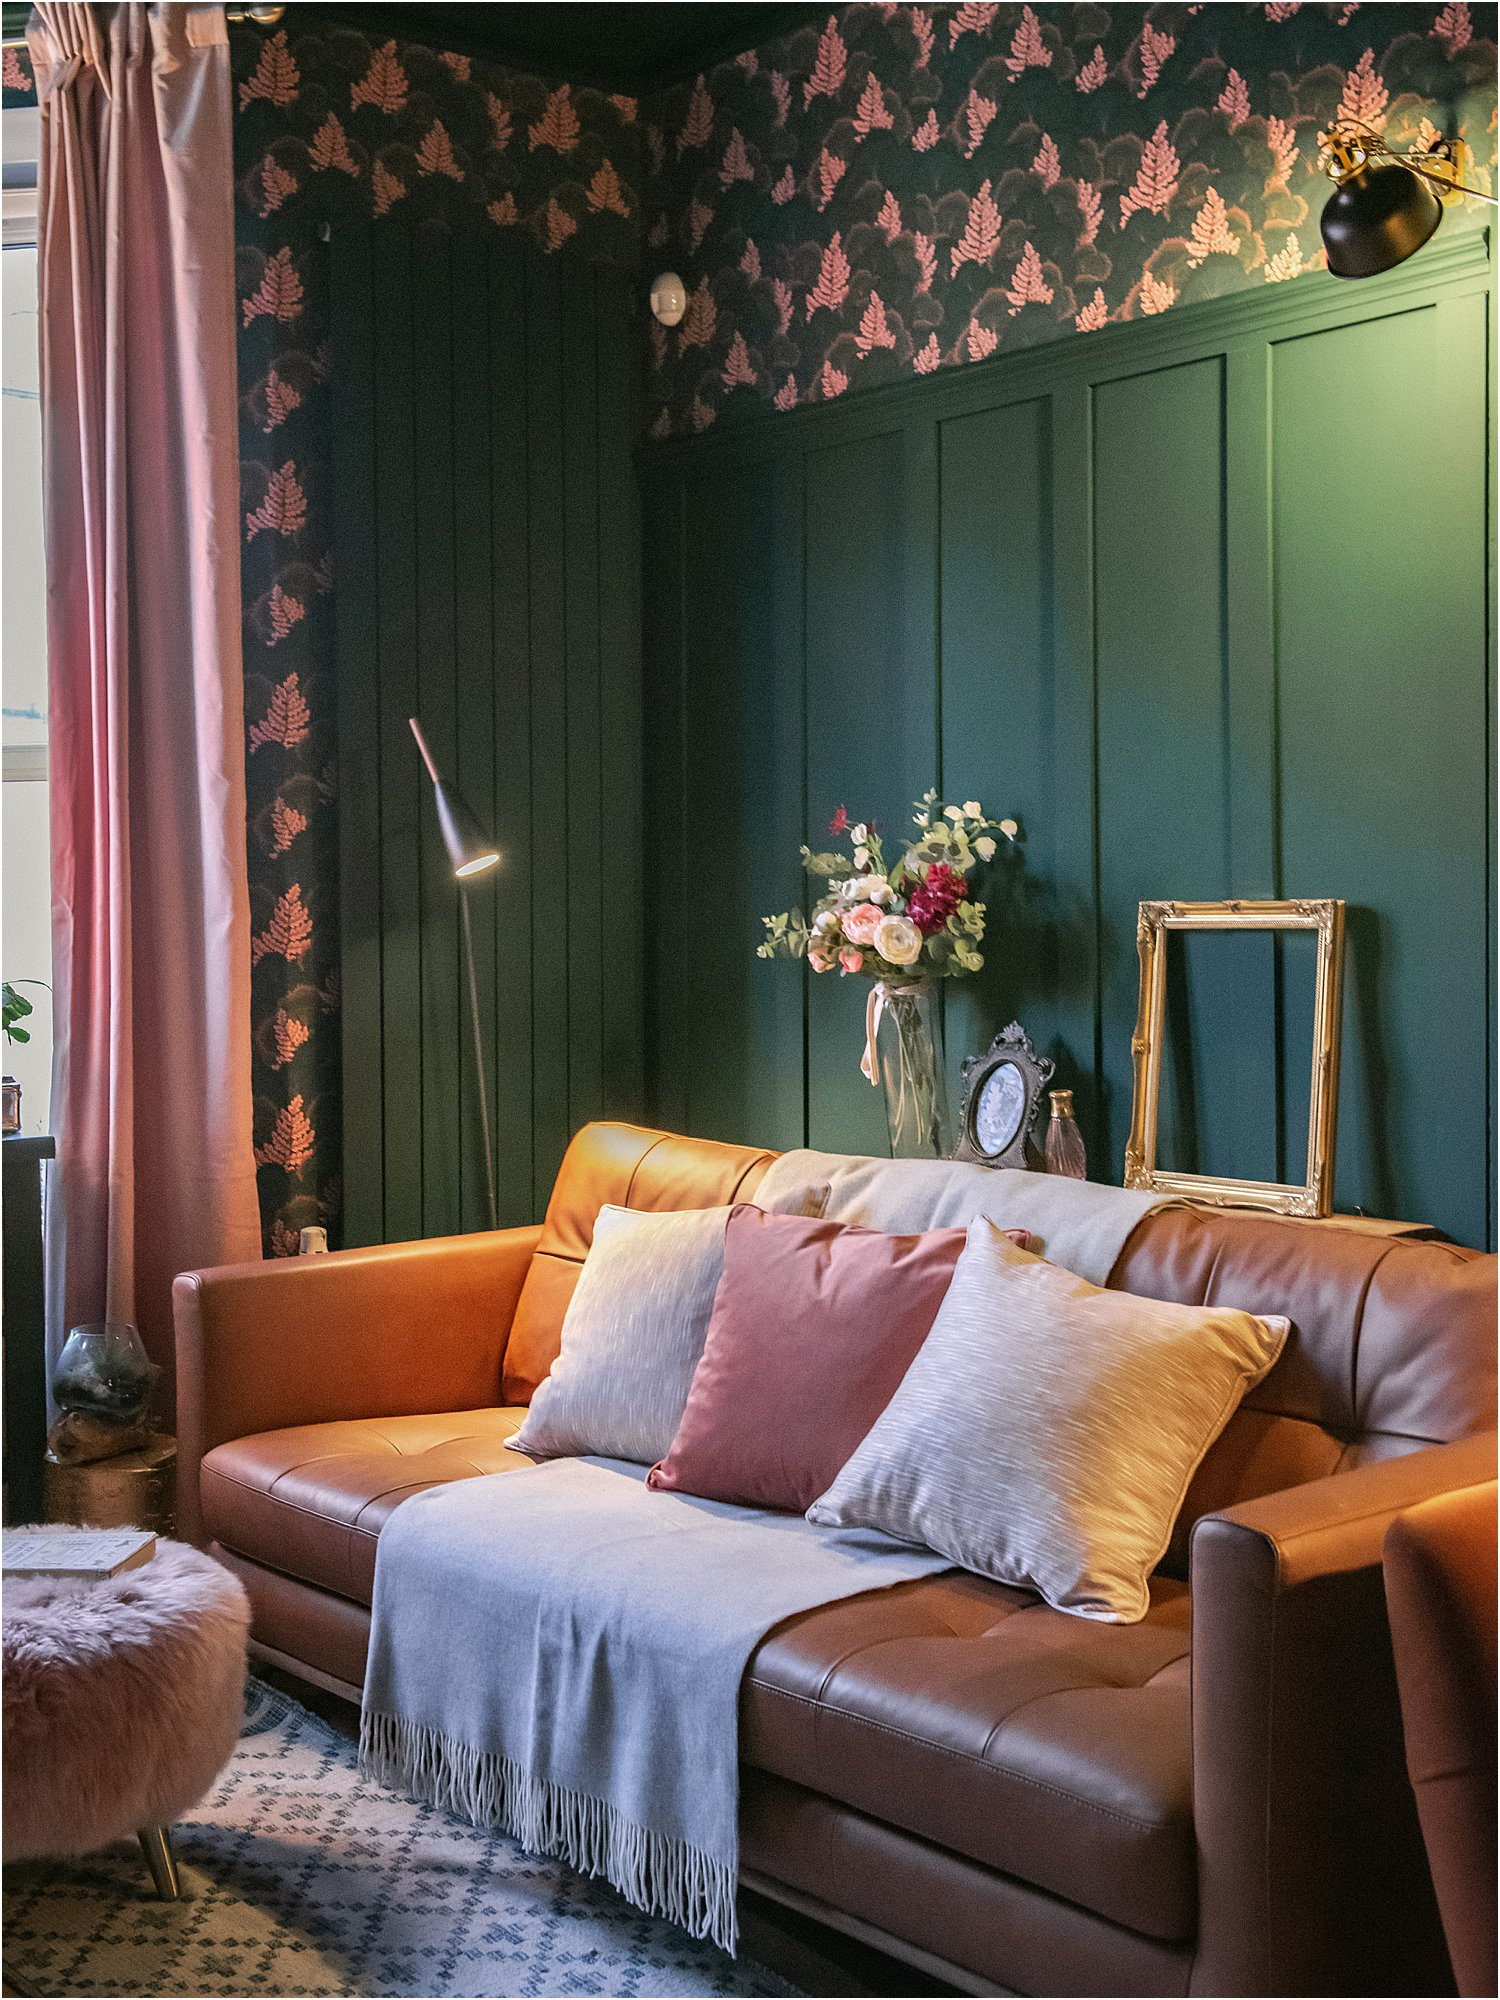 3-ways-to-add-texture-to-your-home-textured-lives-designs